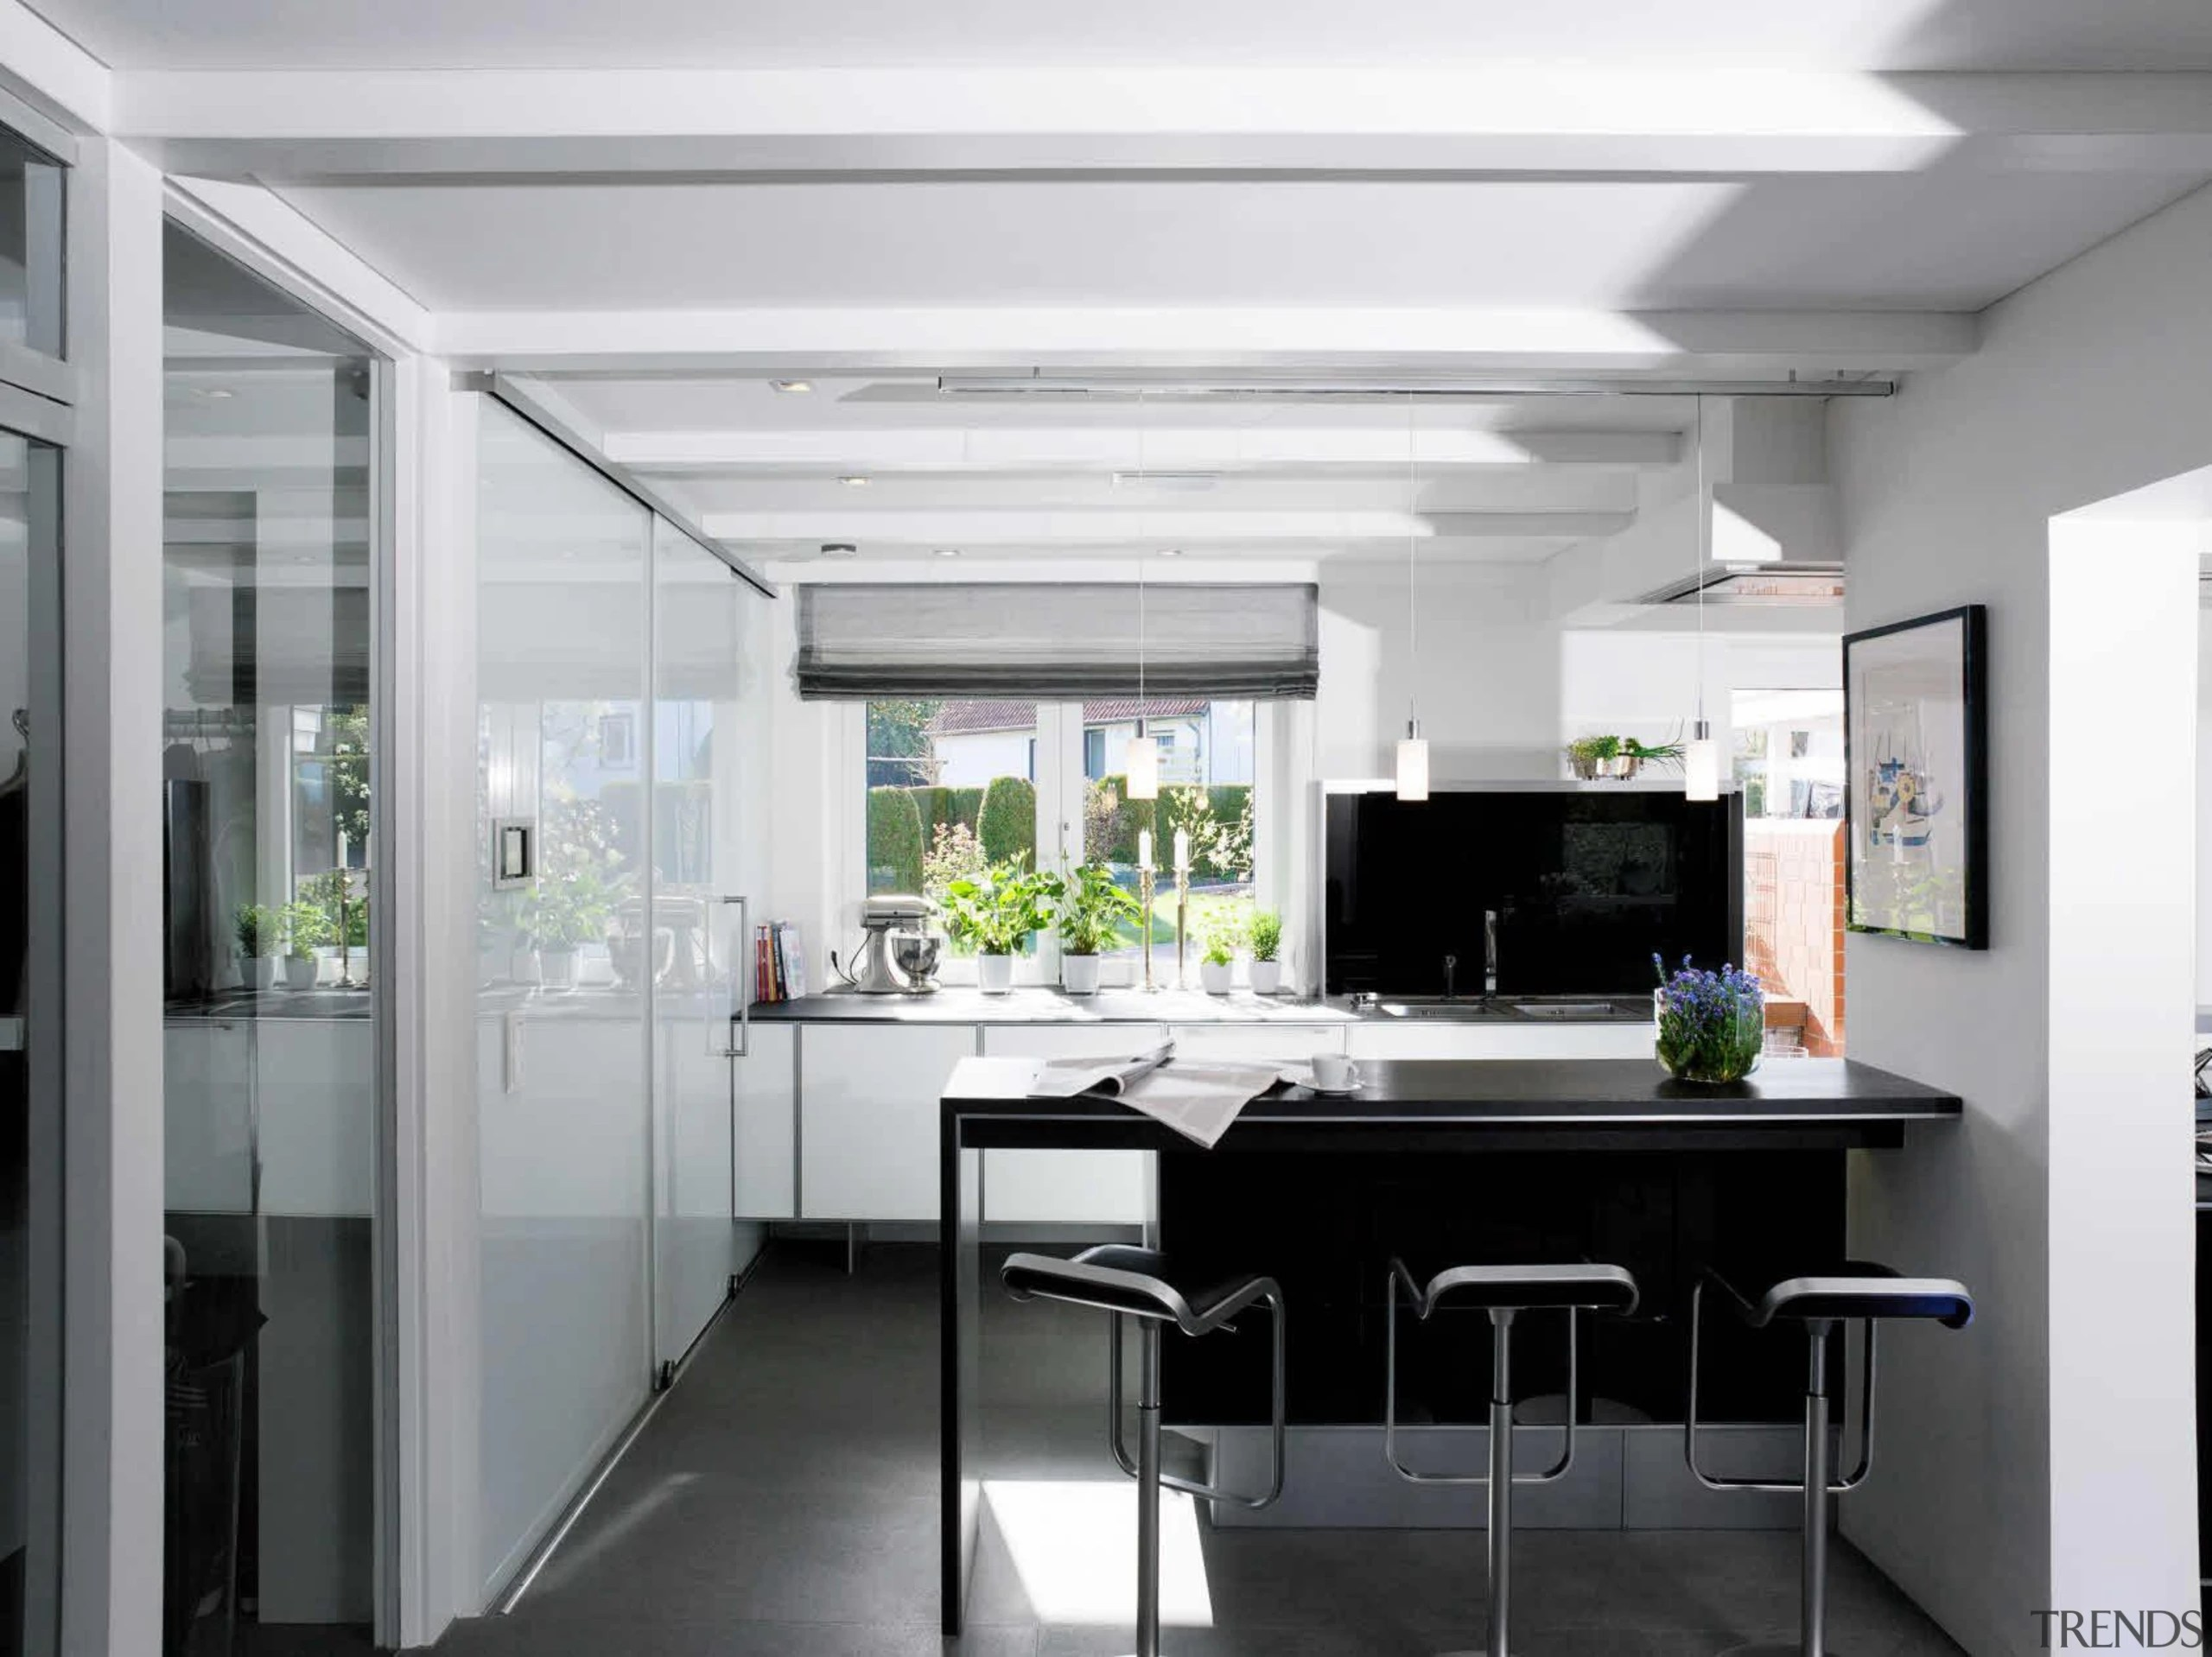 Porsche Design Küche Poggenpohl Kitchen Design Ideas By Poggenpohl Gallery 3 Trends